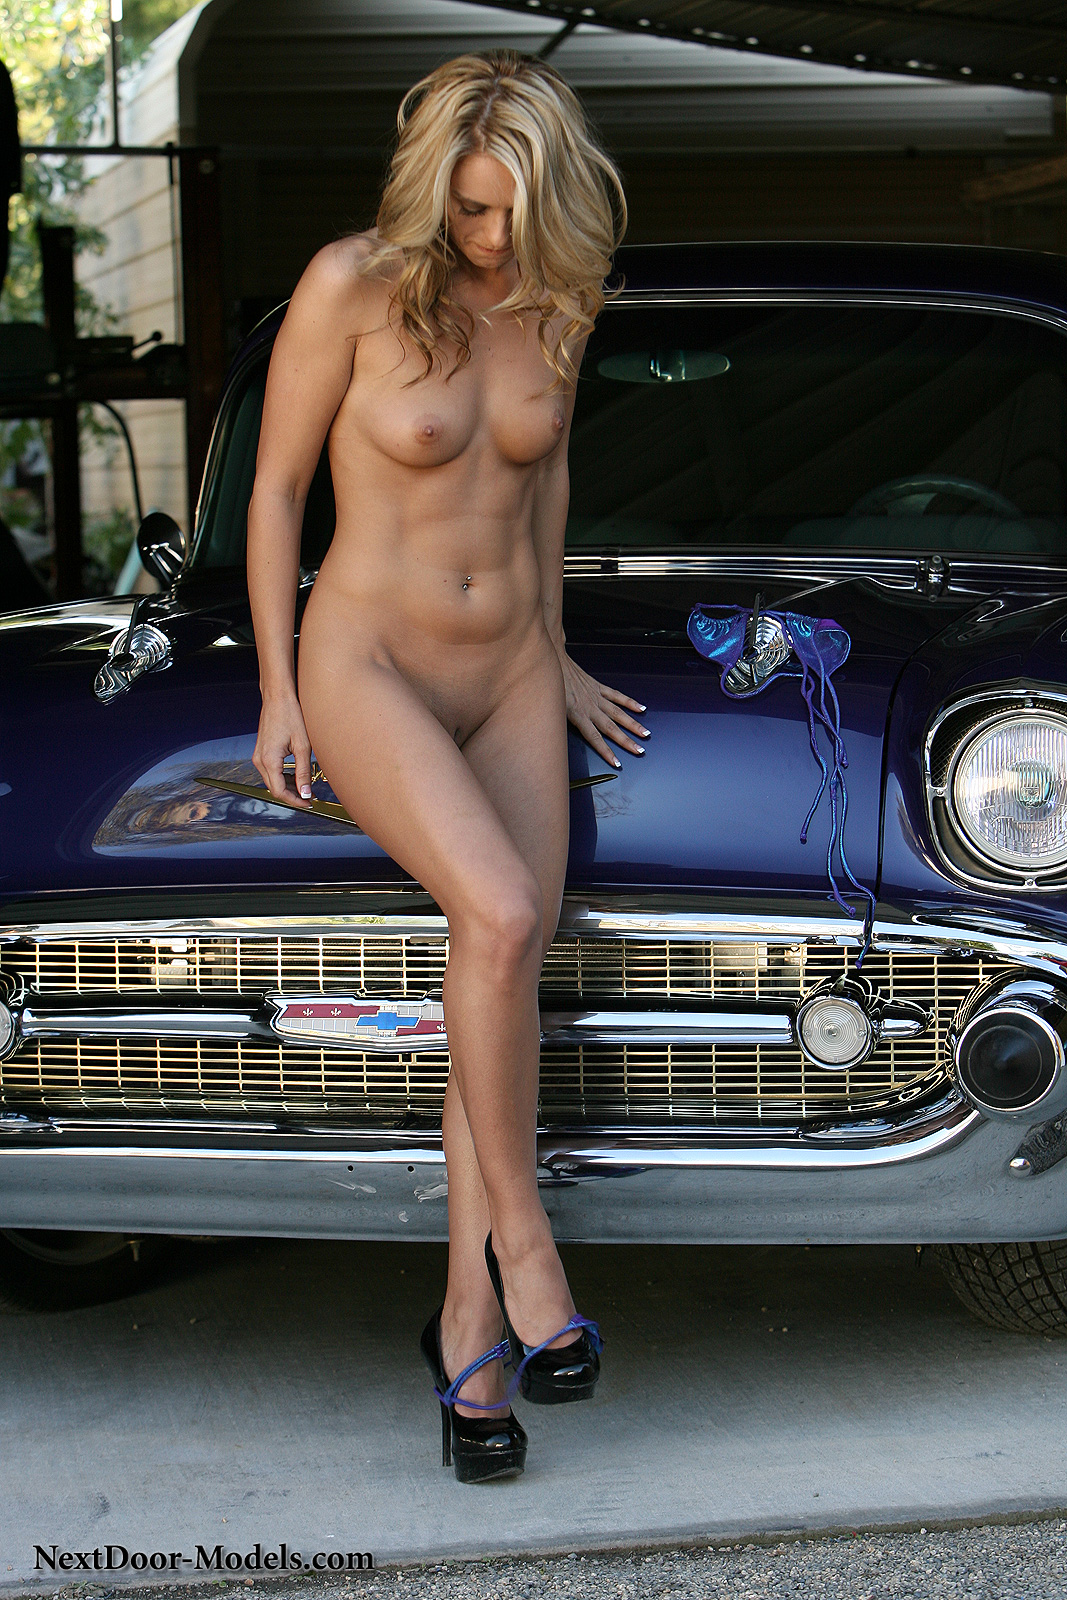 Nude women with corvettes indian